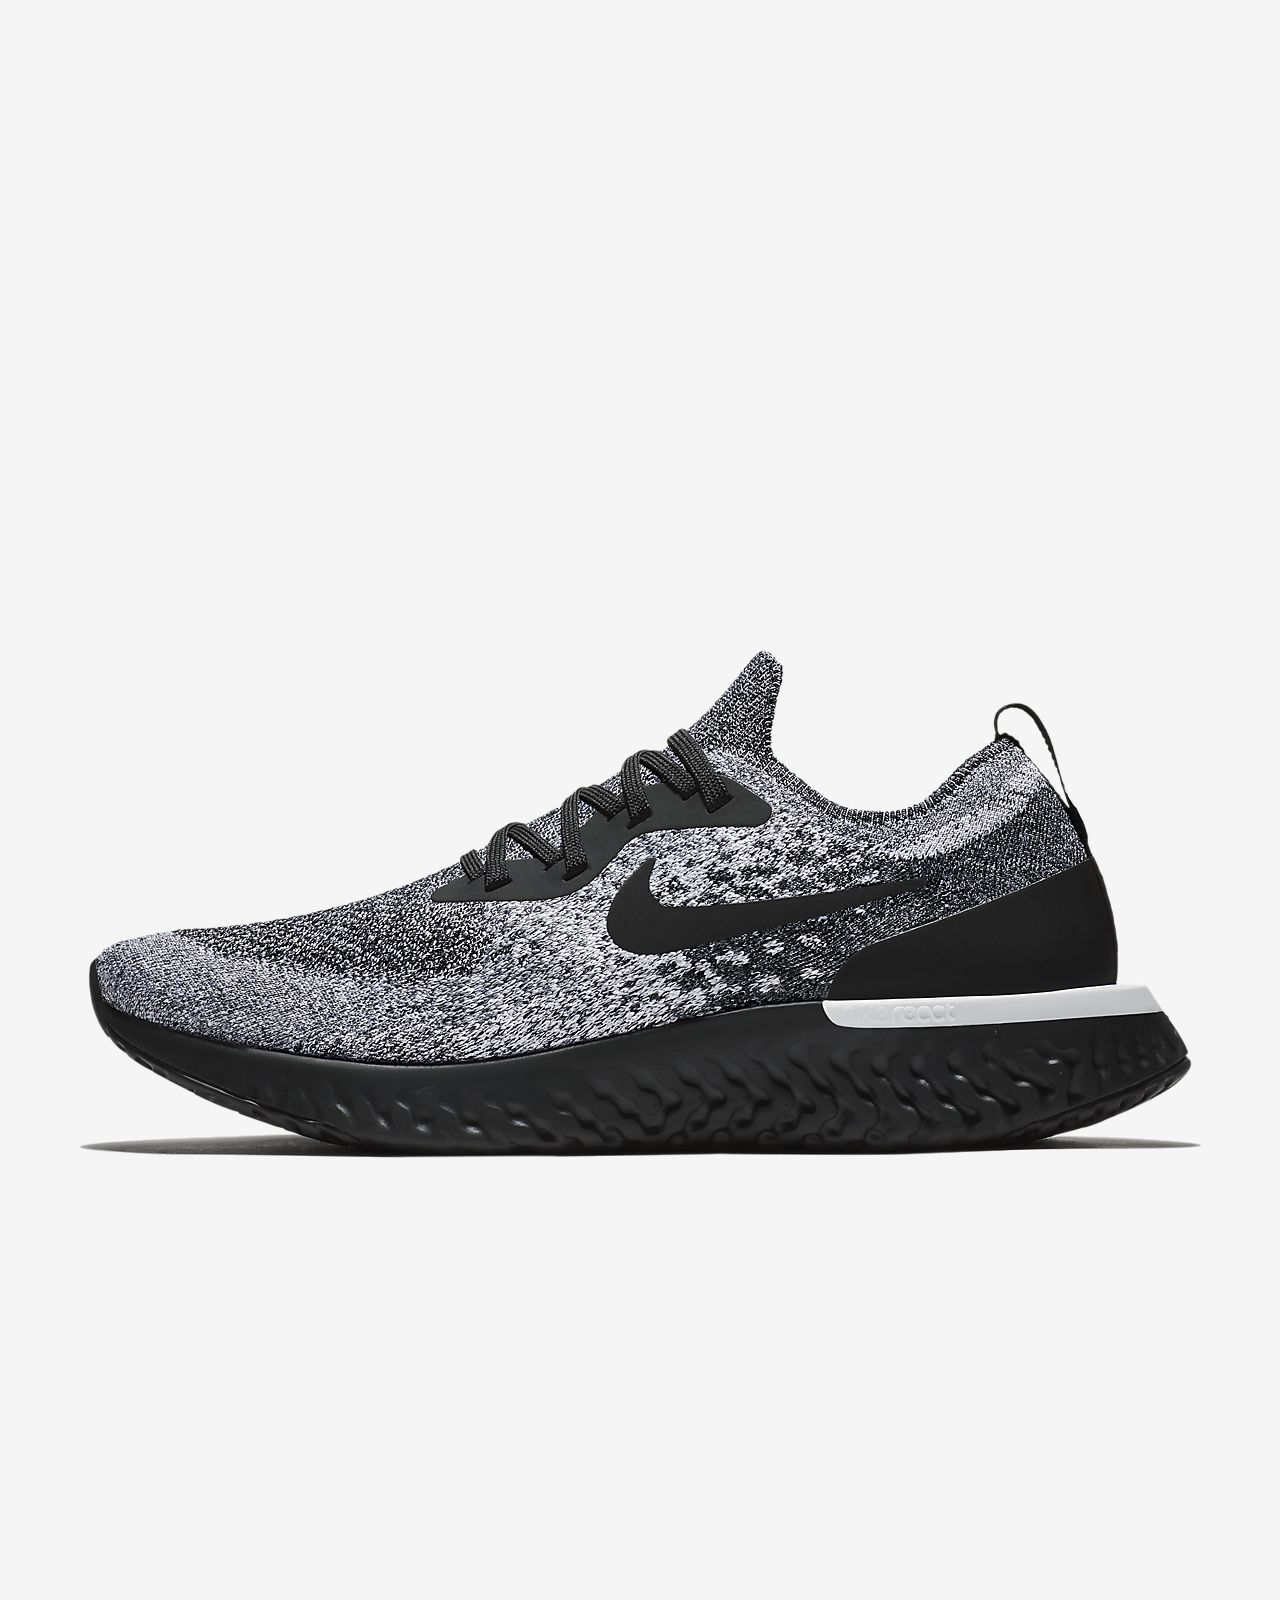 new product f0f30 045b7 Men s Running Shoe. Nike Epic React Flyknit